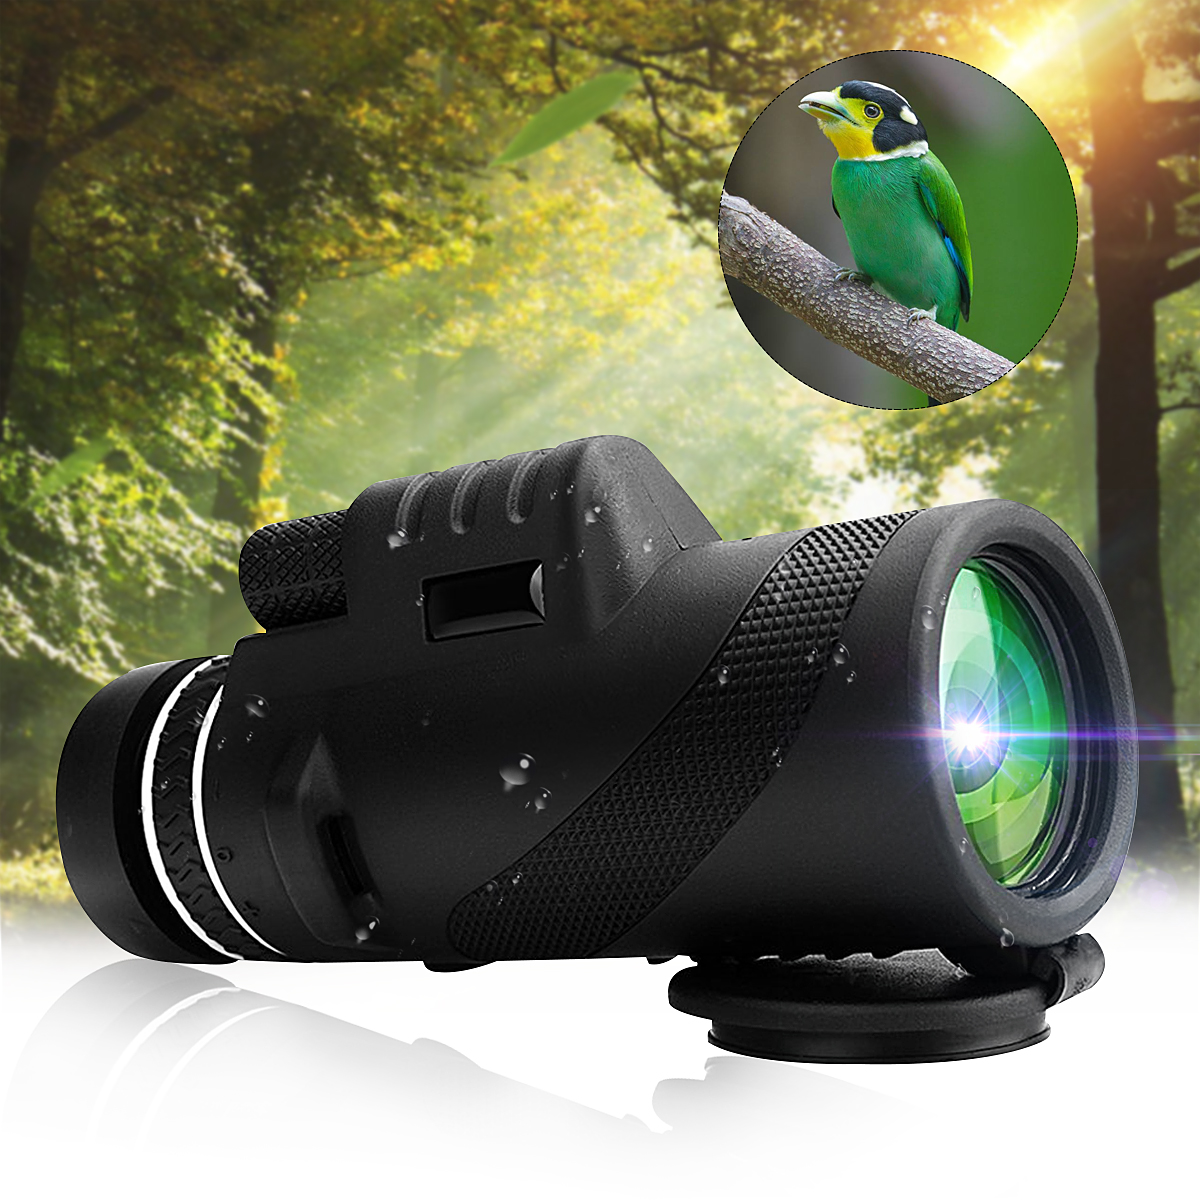 40X60 HD Portable Monocular Telescope Day Night Vision Dual Focus Optical Zoom Waterproof For Hiking Camping... by